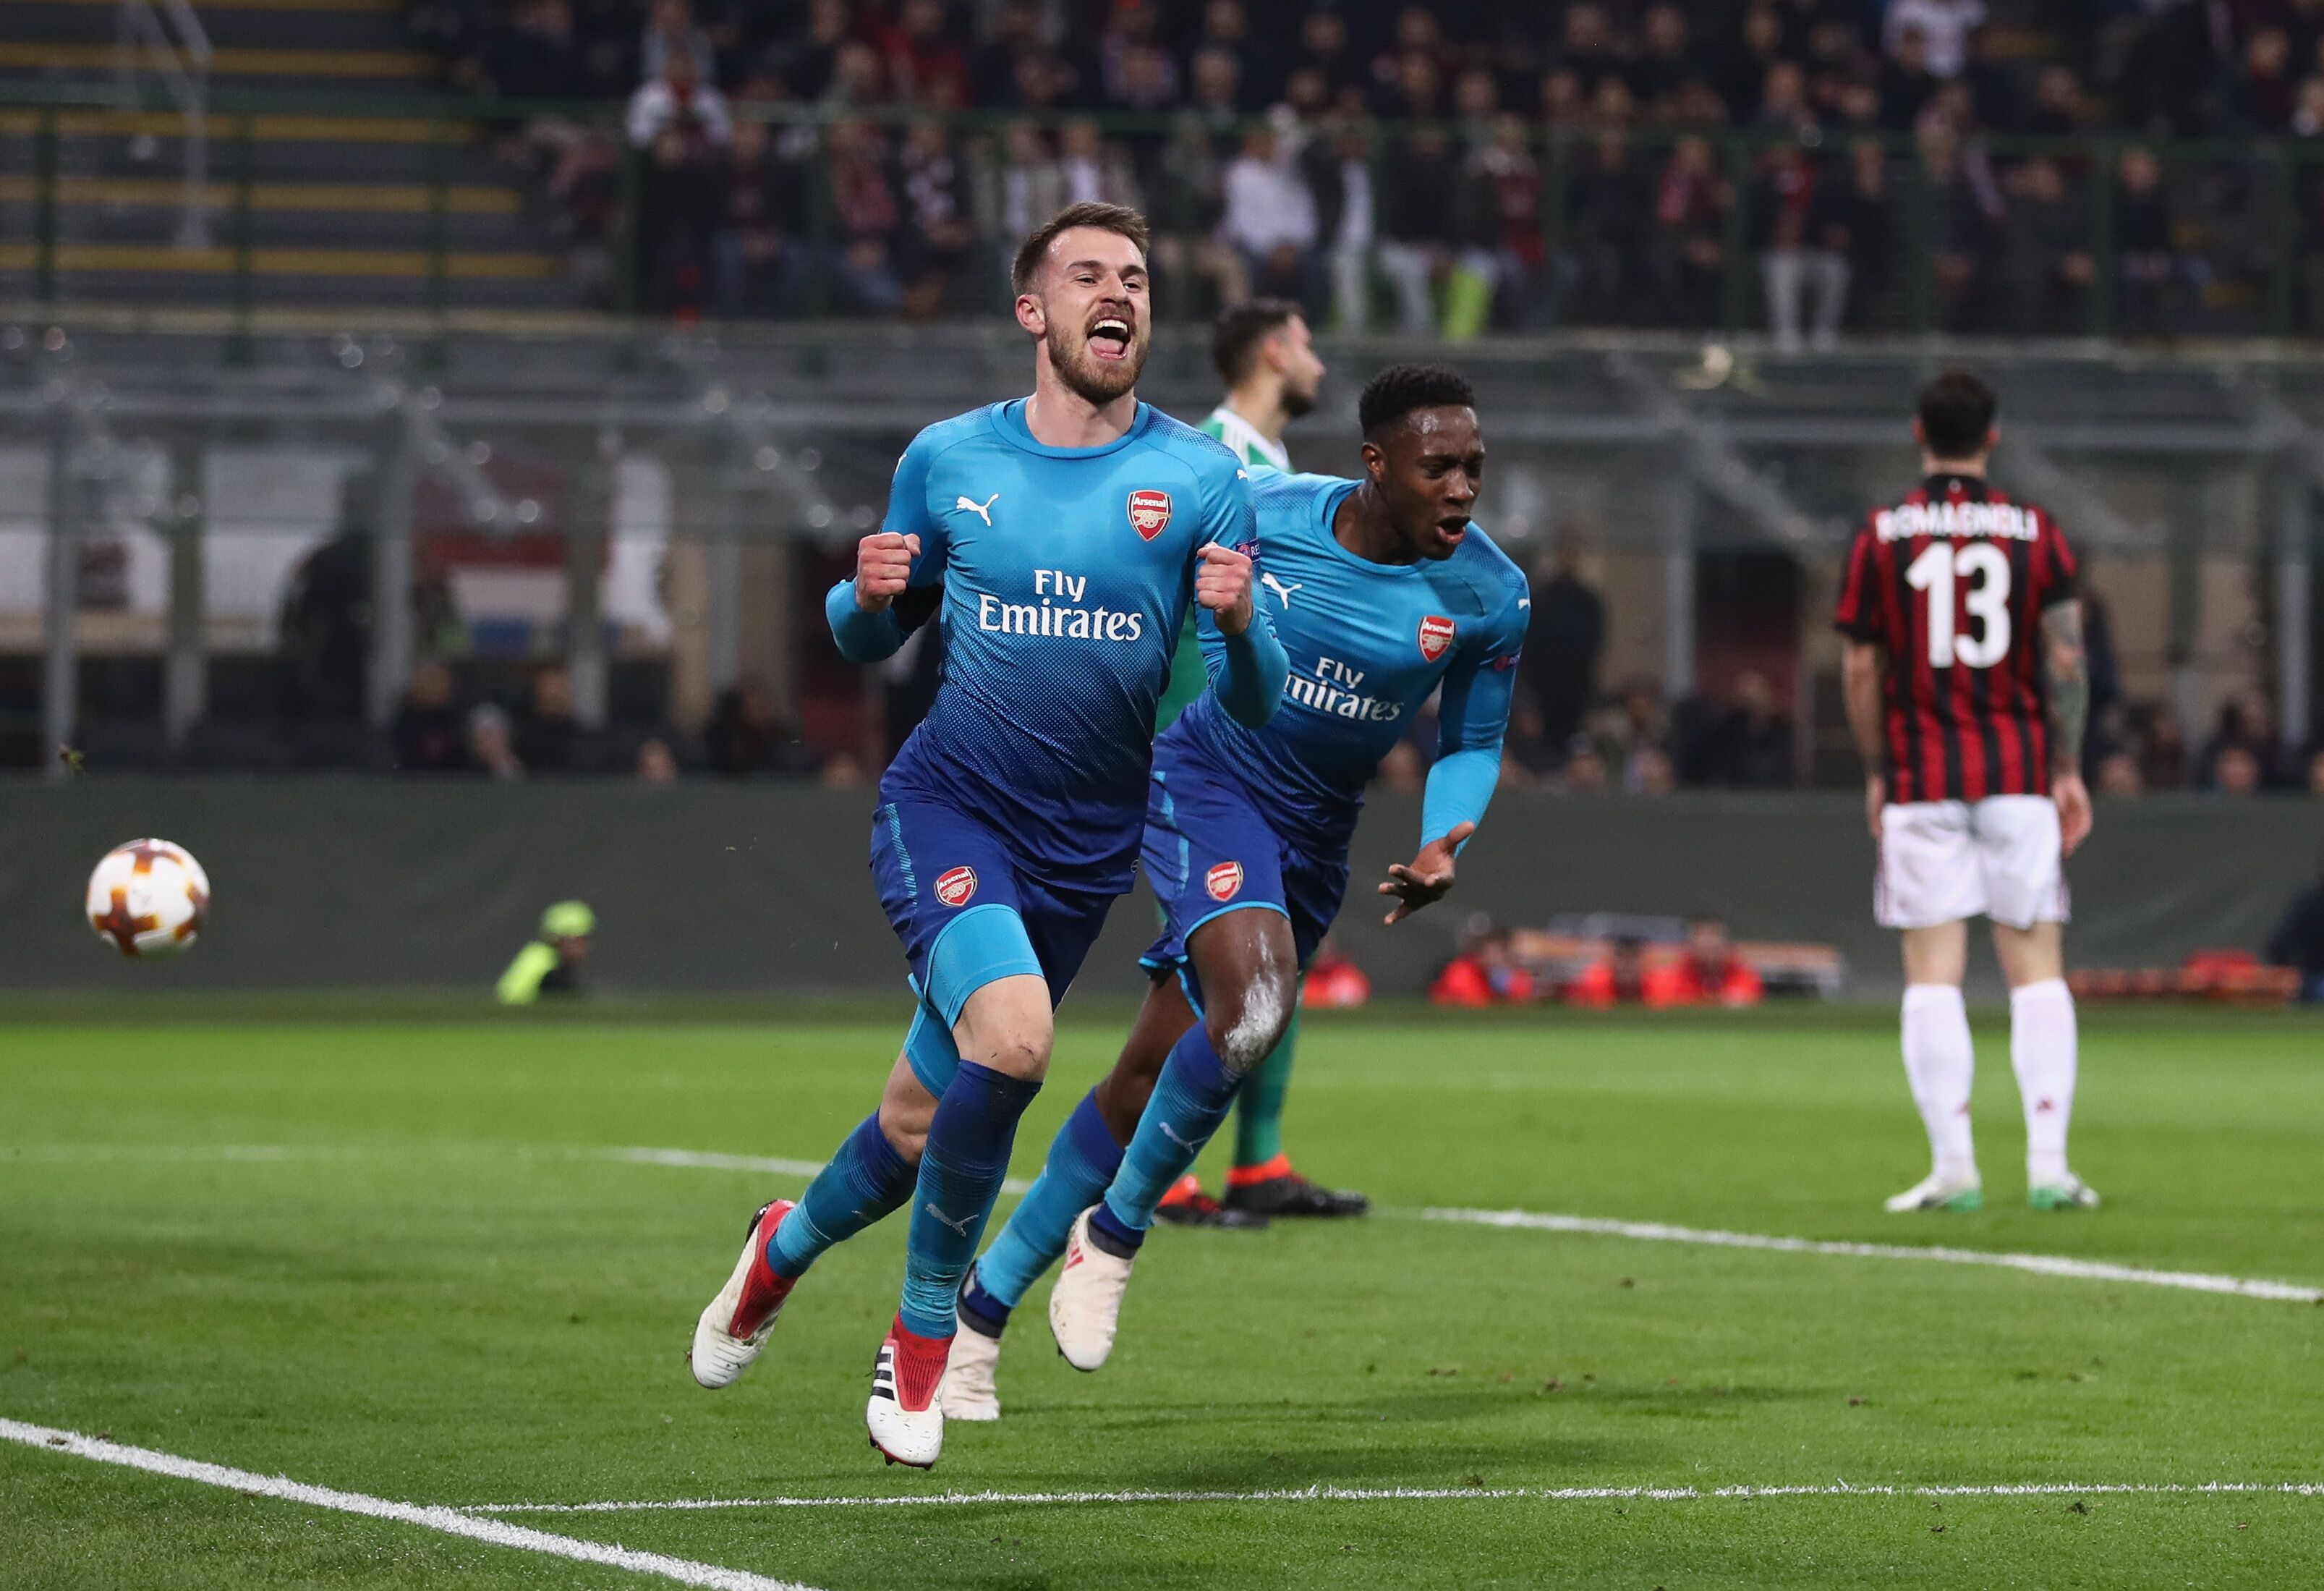 929326752-ac-milan-v-arsenal-uefa-europa-league-round-of-16-first-leg.jpg